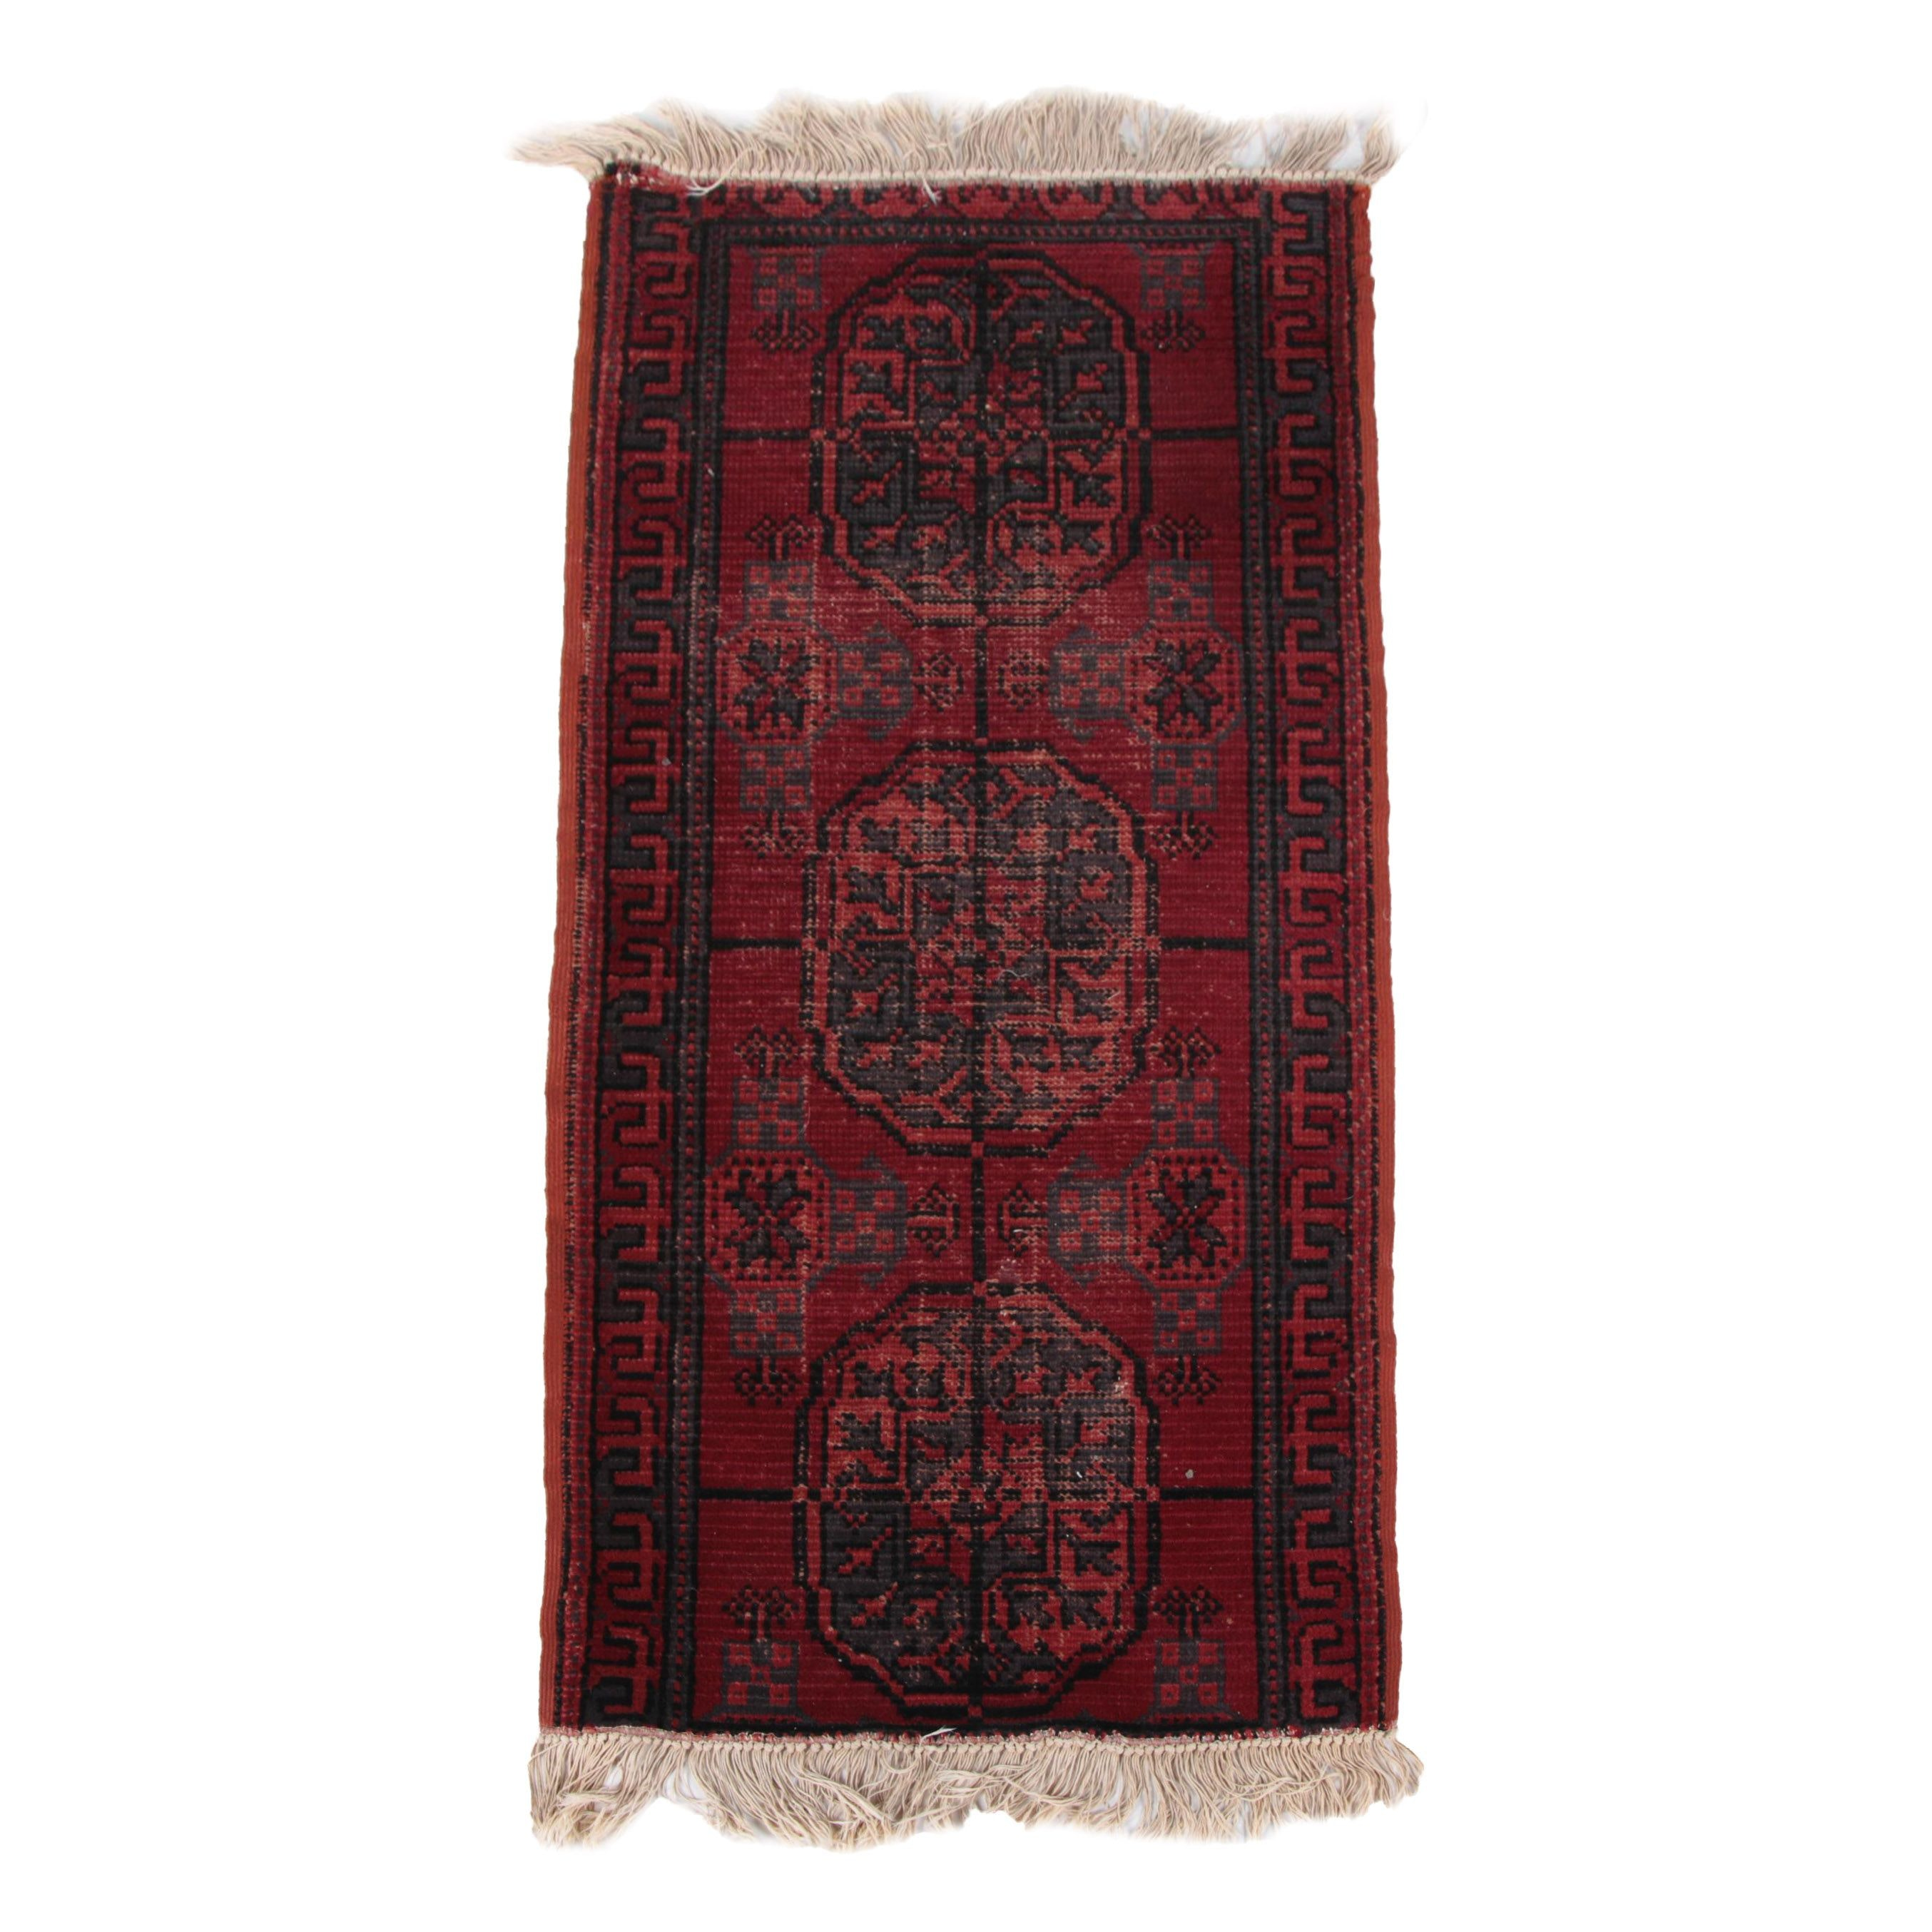 Antique Handwoven Turkmen Accent Rug